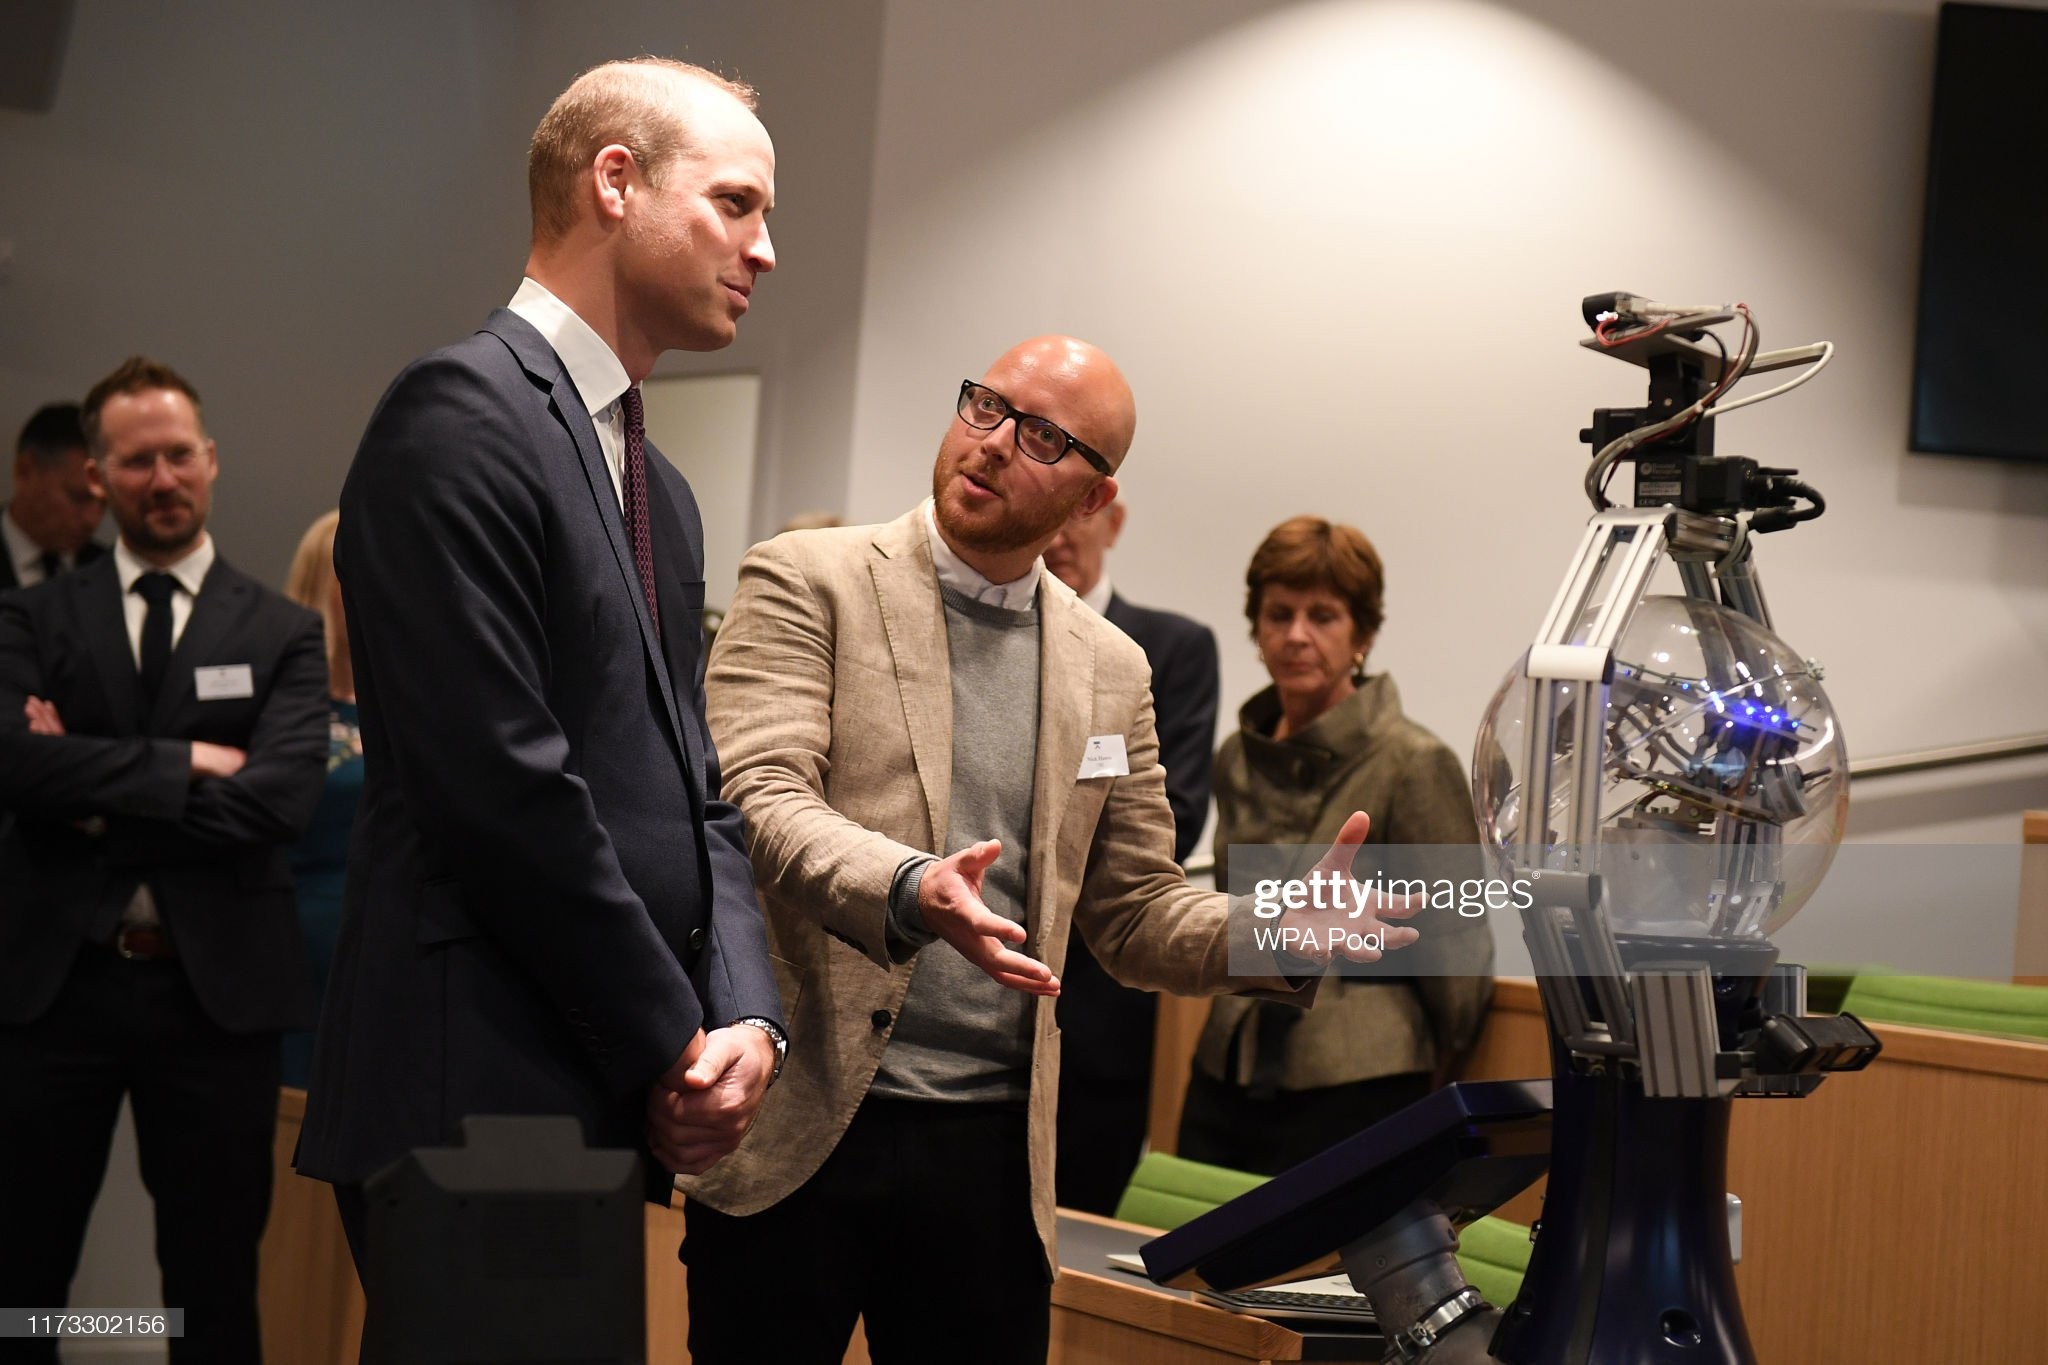 prince-william-duke-of-cambridge-is-introduced-to-betty-a-mobile-a-picture-id1173302156